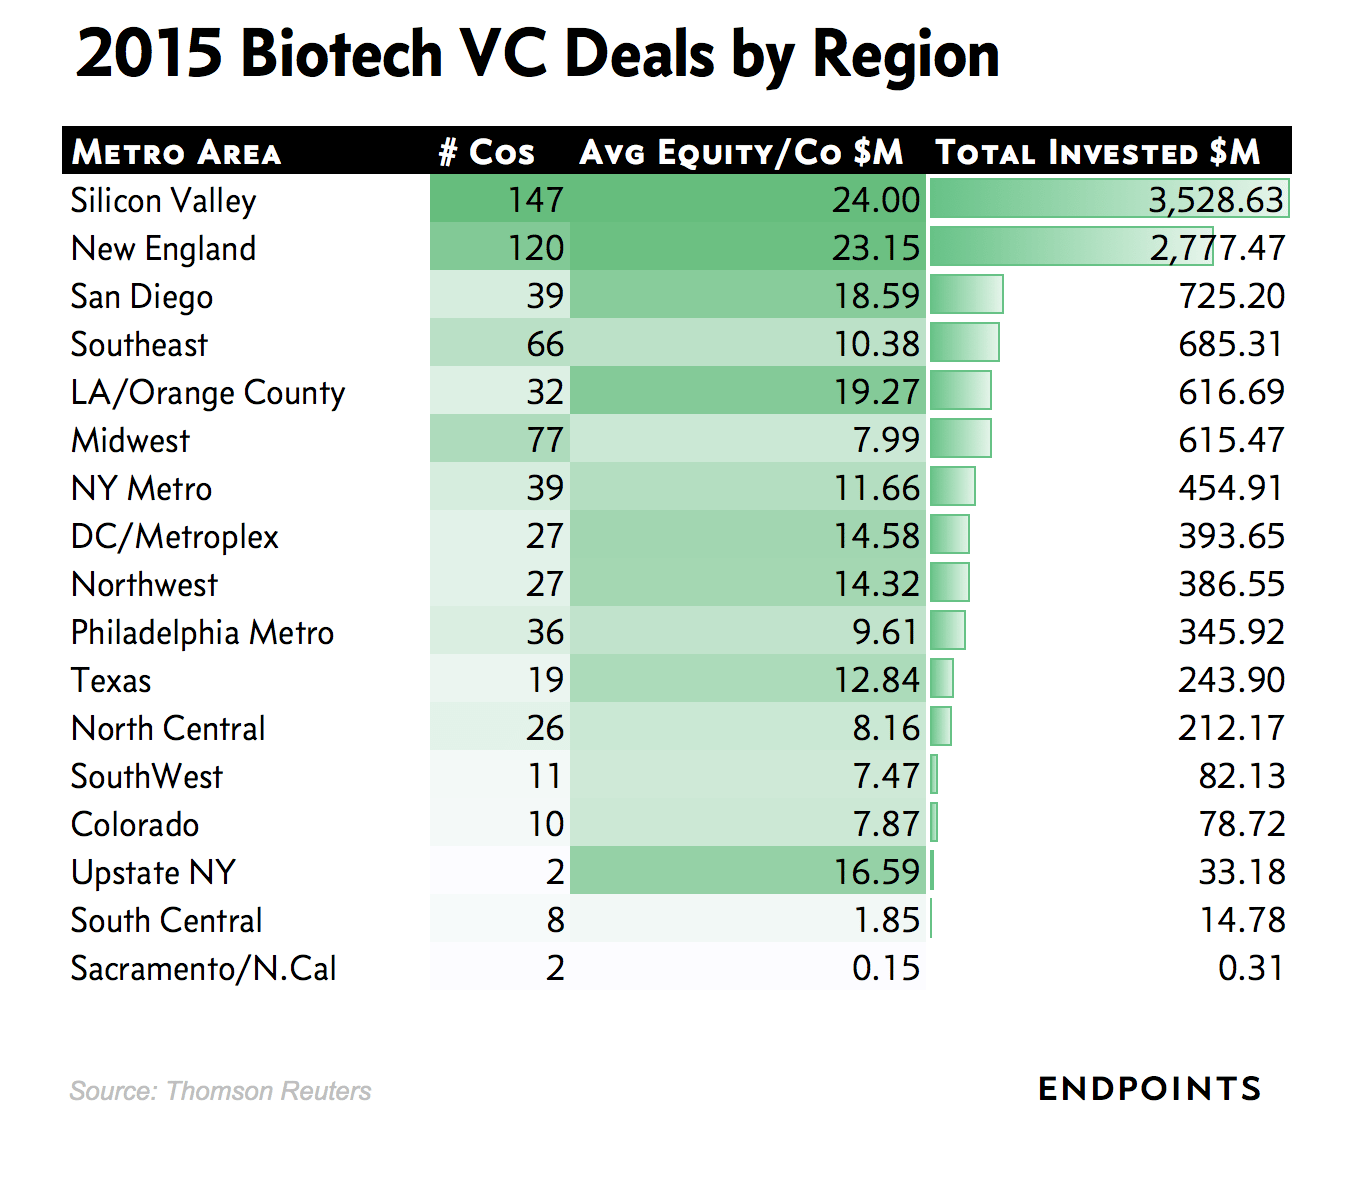 2015 Biotech VC Investing by Region